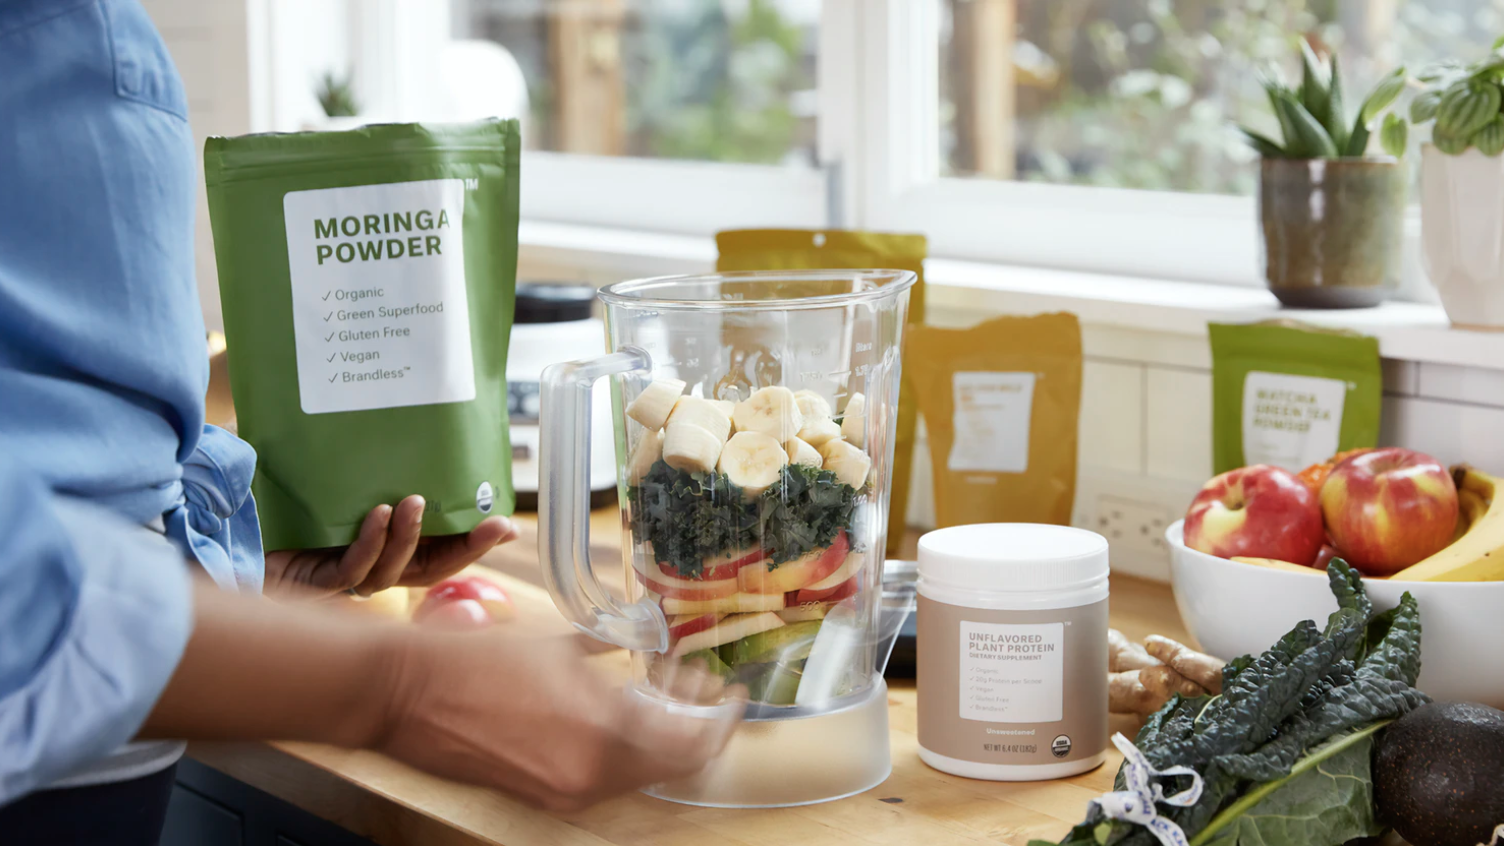 A woman puts greens powder keto supplements into a blender